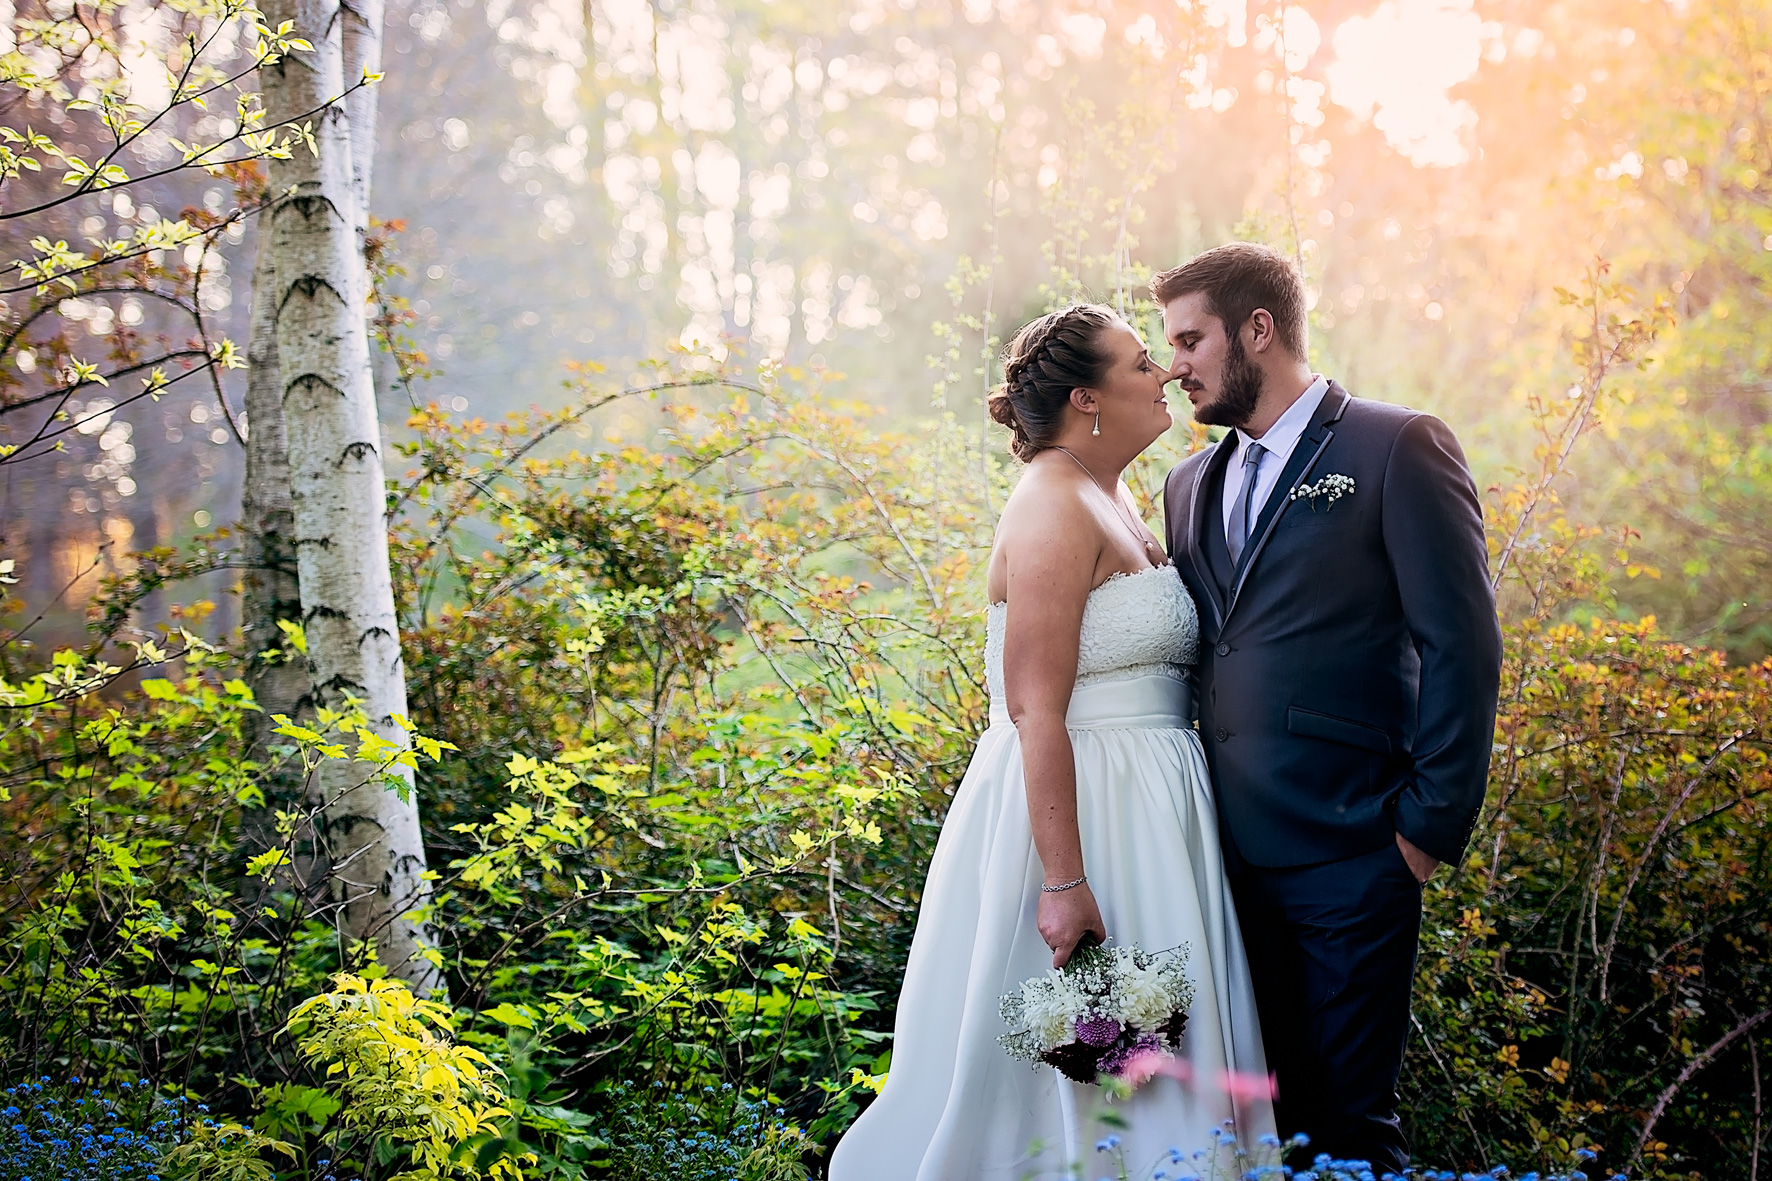 How much should you spend on your wedding?